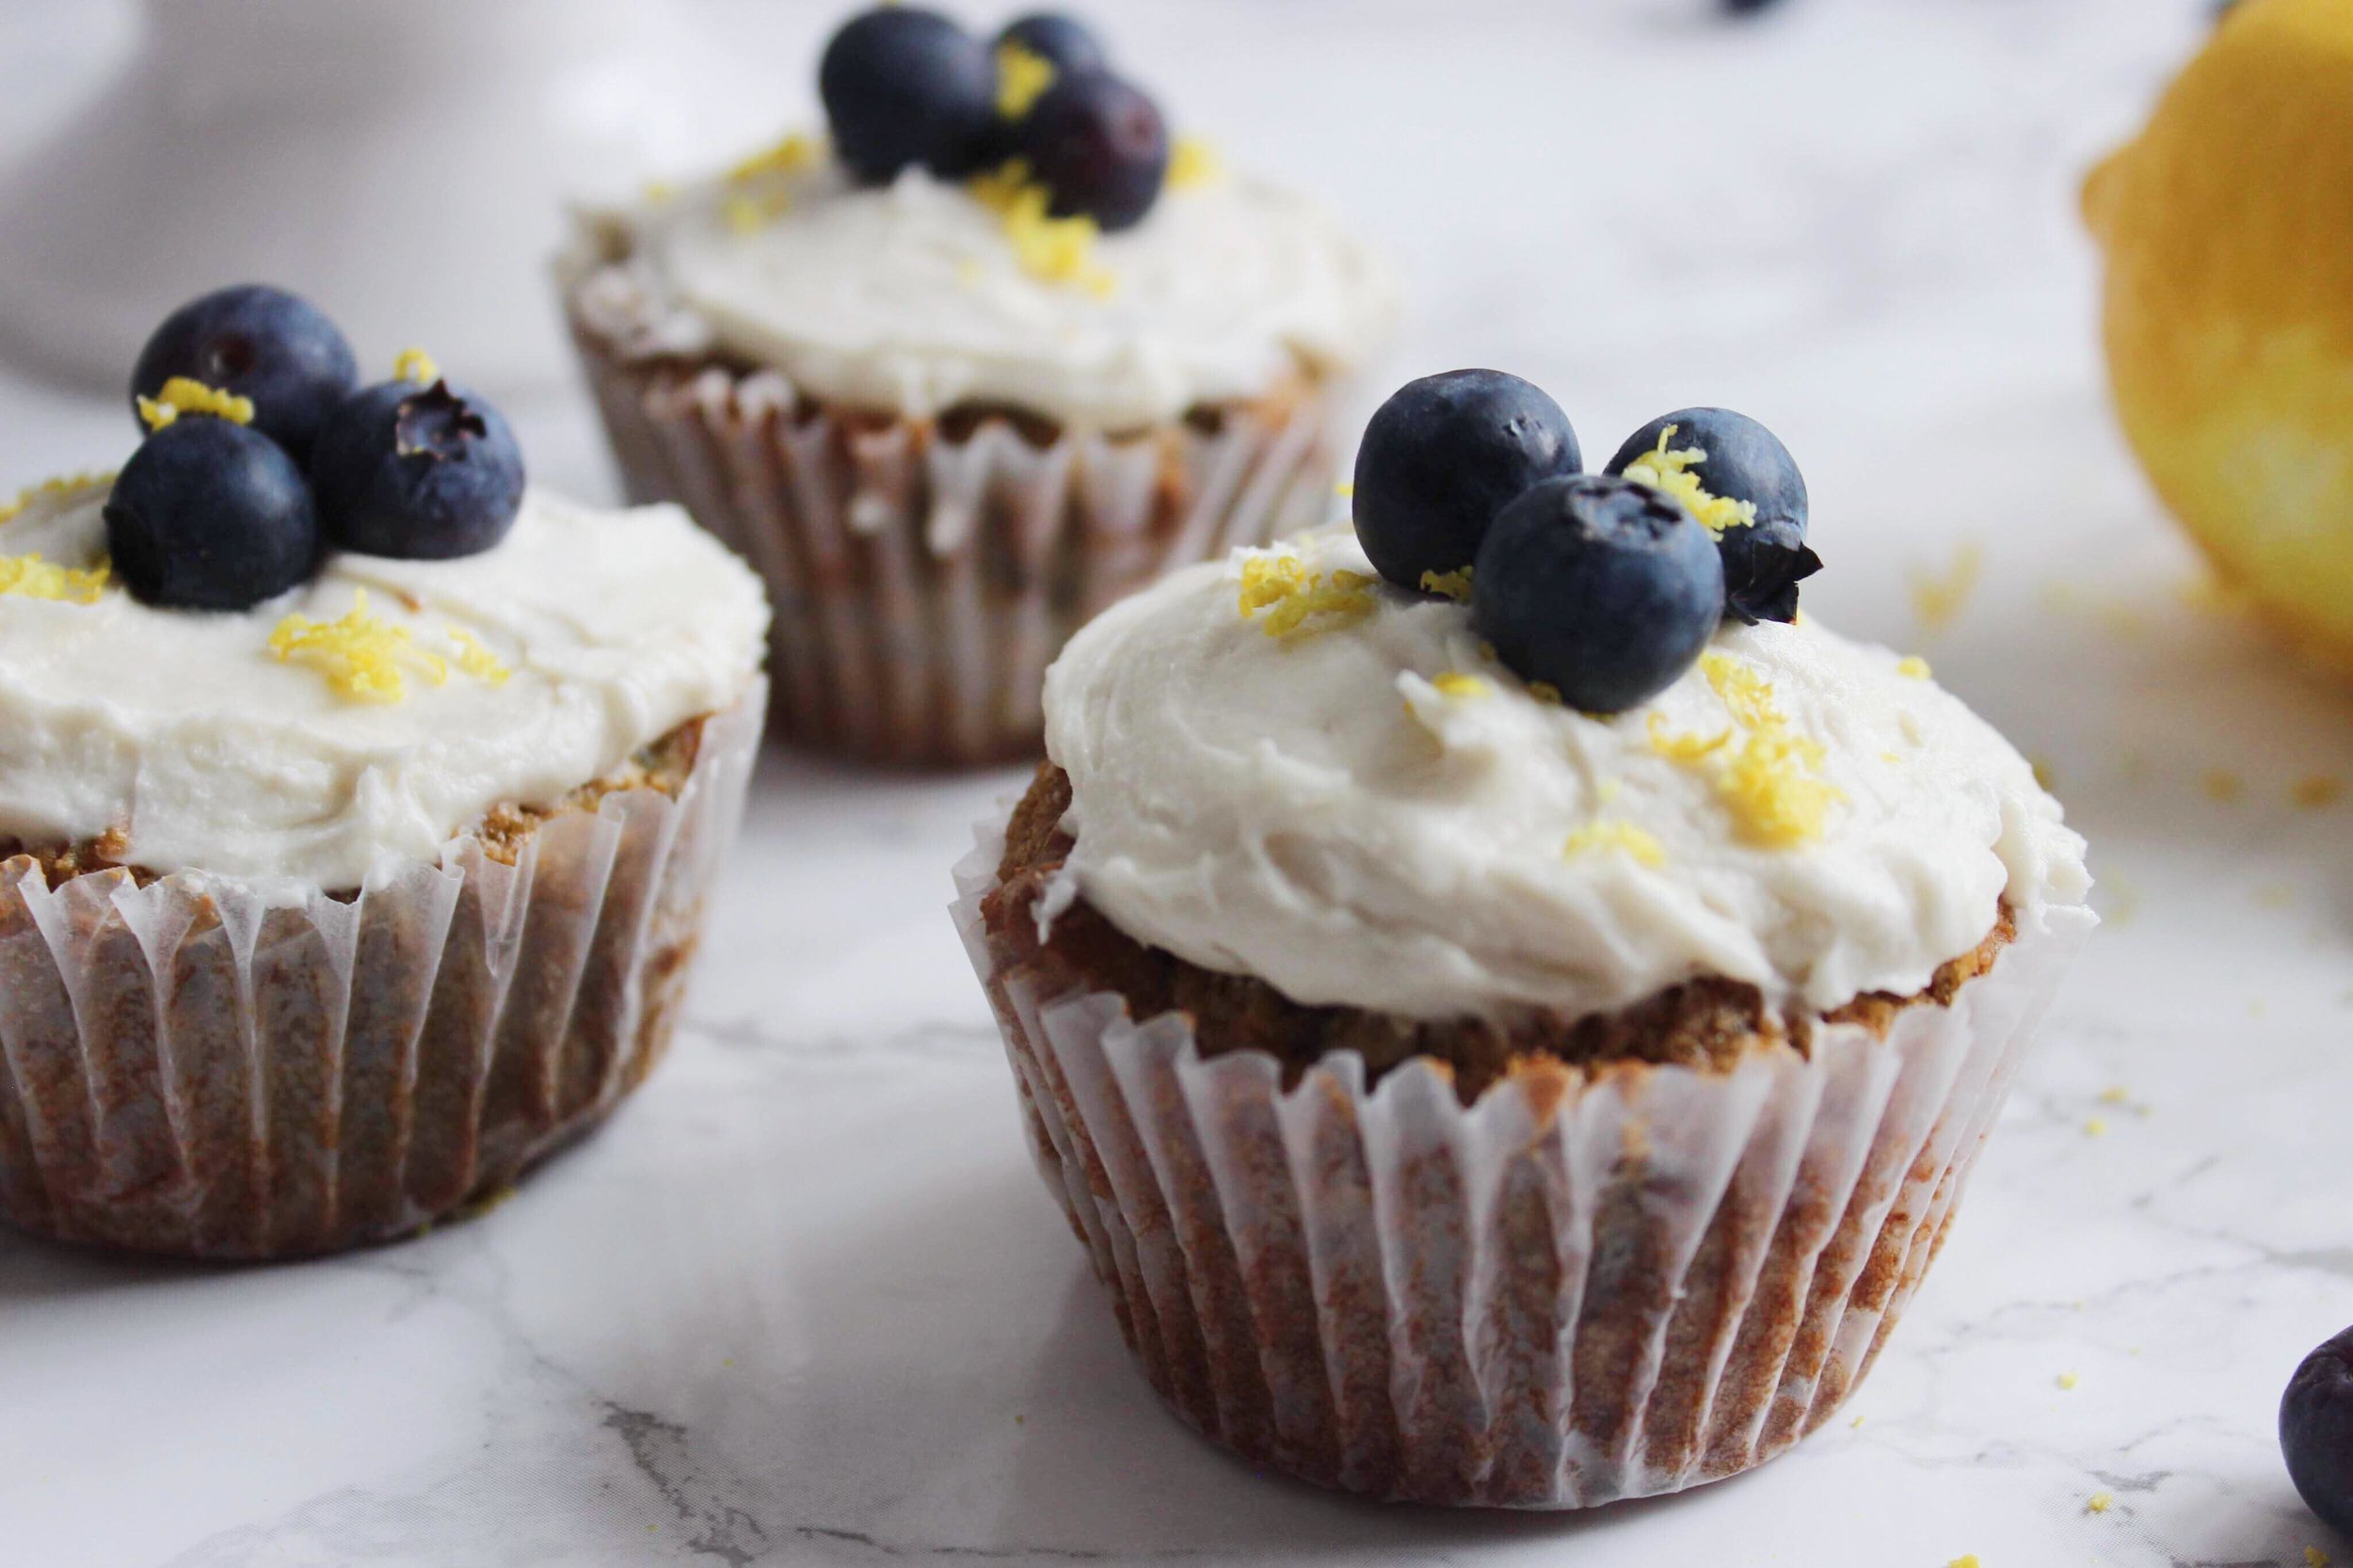 paleo cupcakes with lemon cream frosting